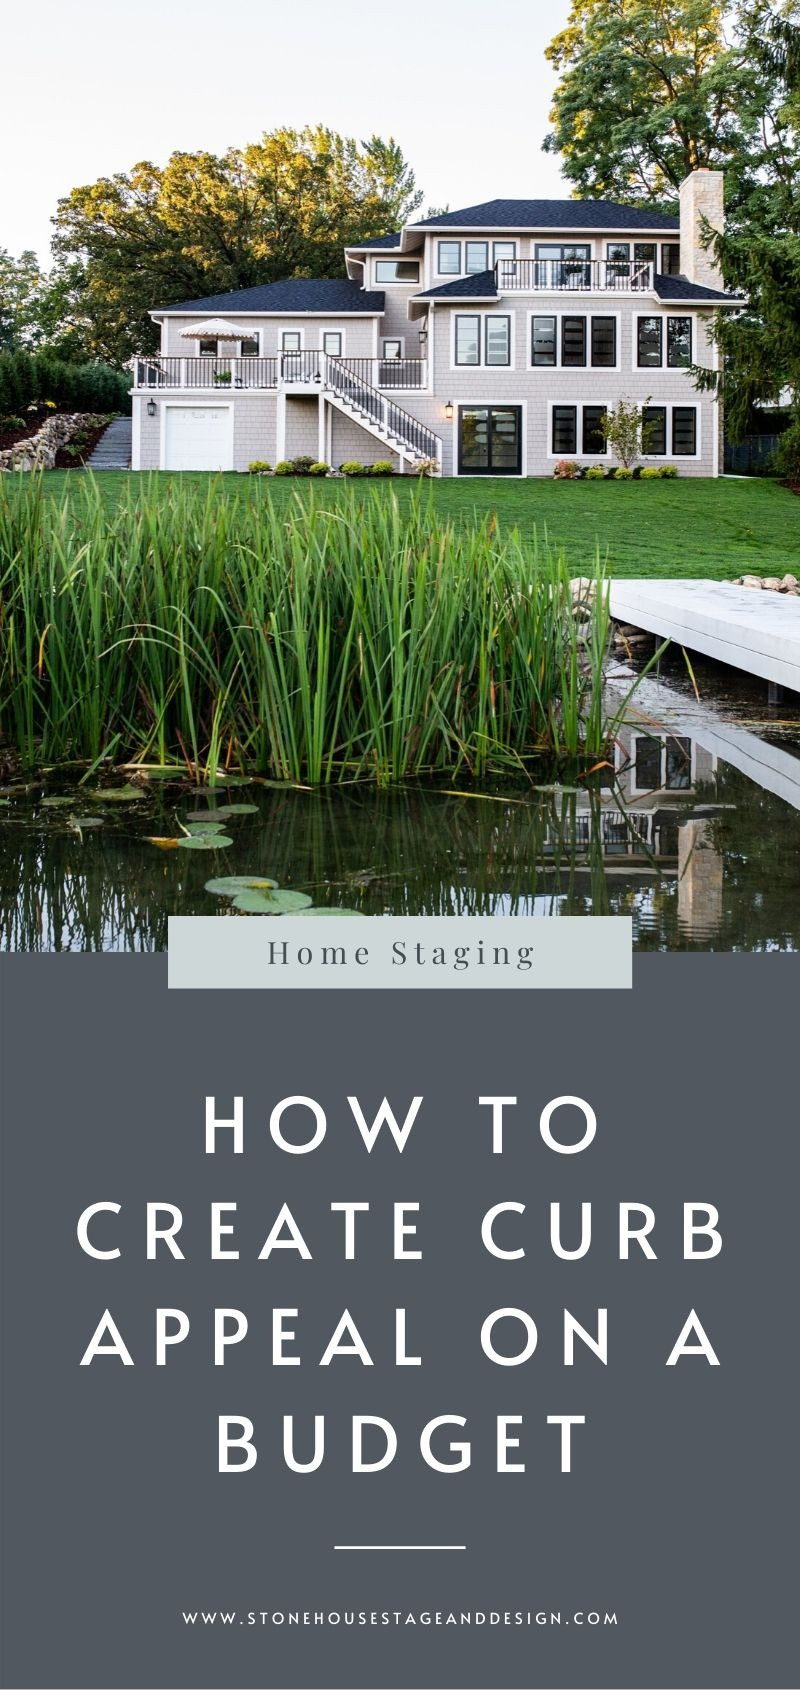 How to Create Curb Appeal on a Budget